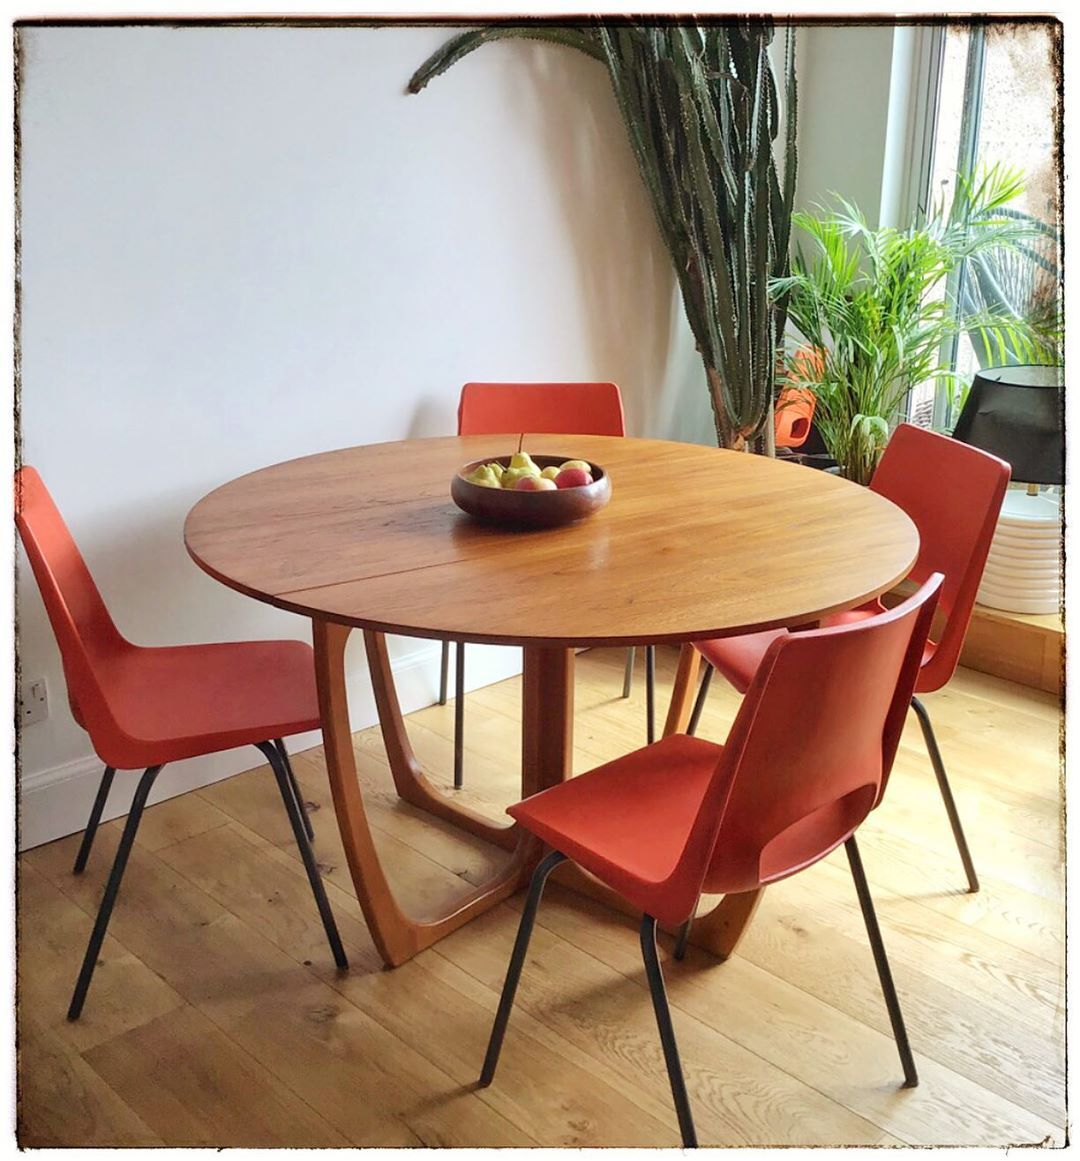 Sensational teak dining table by Beithcraft and 4 industrial chairs by Philippus Potter (1970s, was produced by Ahrend de Cirkel in the Netherlands) .Bold, eclectic, simply fabulous and  Ideal for  family gathering. #retro#vintage #60s #edinburgh #glasgow #midcentury #midcenturymodern #midcenturymodernfurniture #photography #mcm#edinburghlife #home#interiordesign #interiors#homestyling #homeinspiration #designer #decor#homeideas #interior #ercol #vintagefurniture #diningroom #design #home#danish